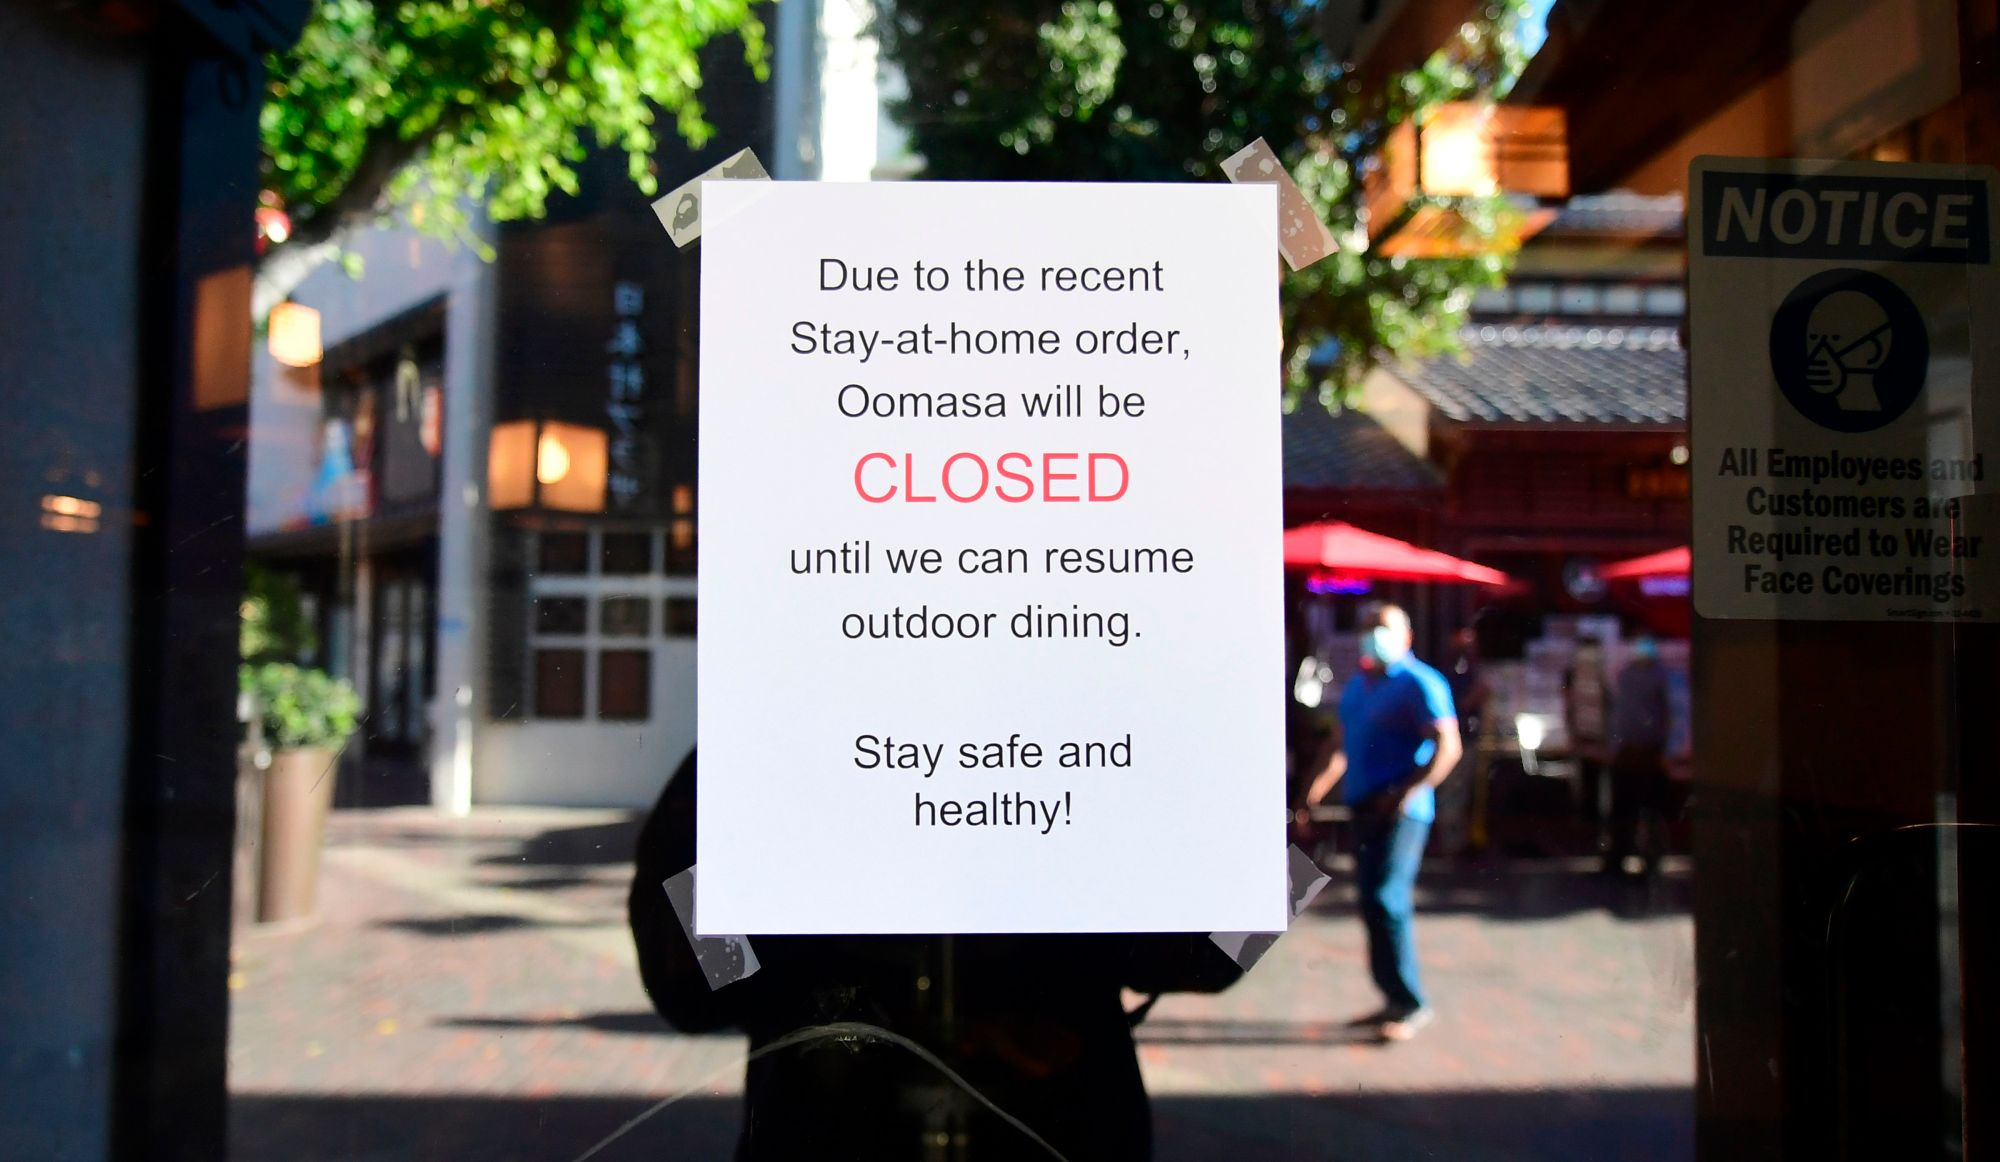 A restaurant announces its closure due to a more restrictive stay-at-home order in Los Angeles on Dec. 1, 2020. (FREDERIC J. BROWN/AFP via Getty Images)